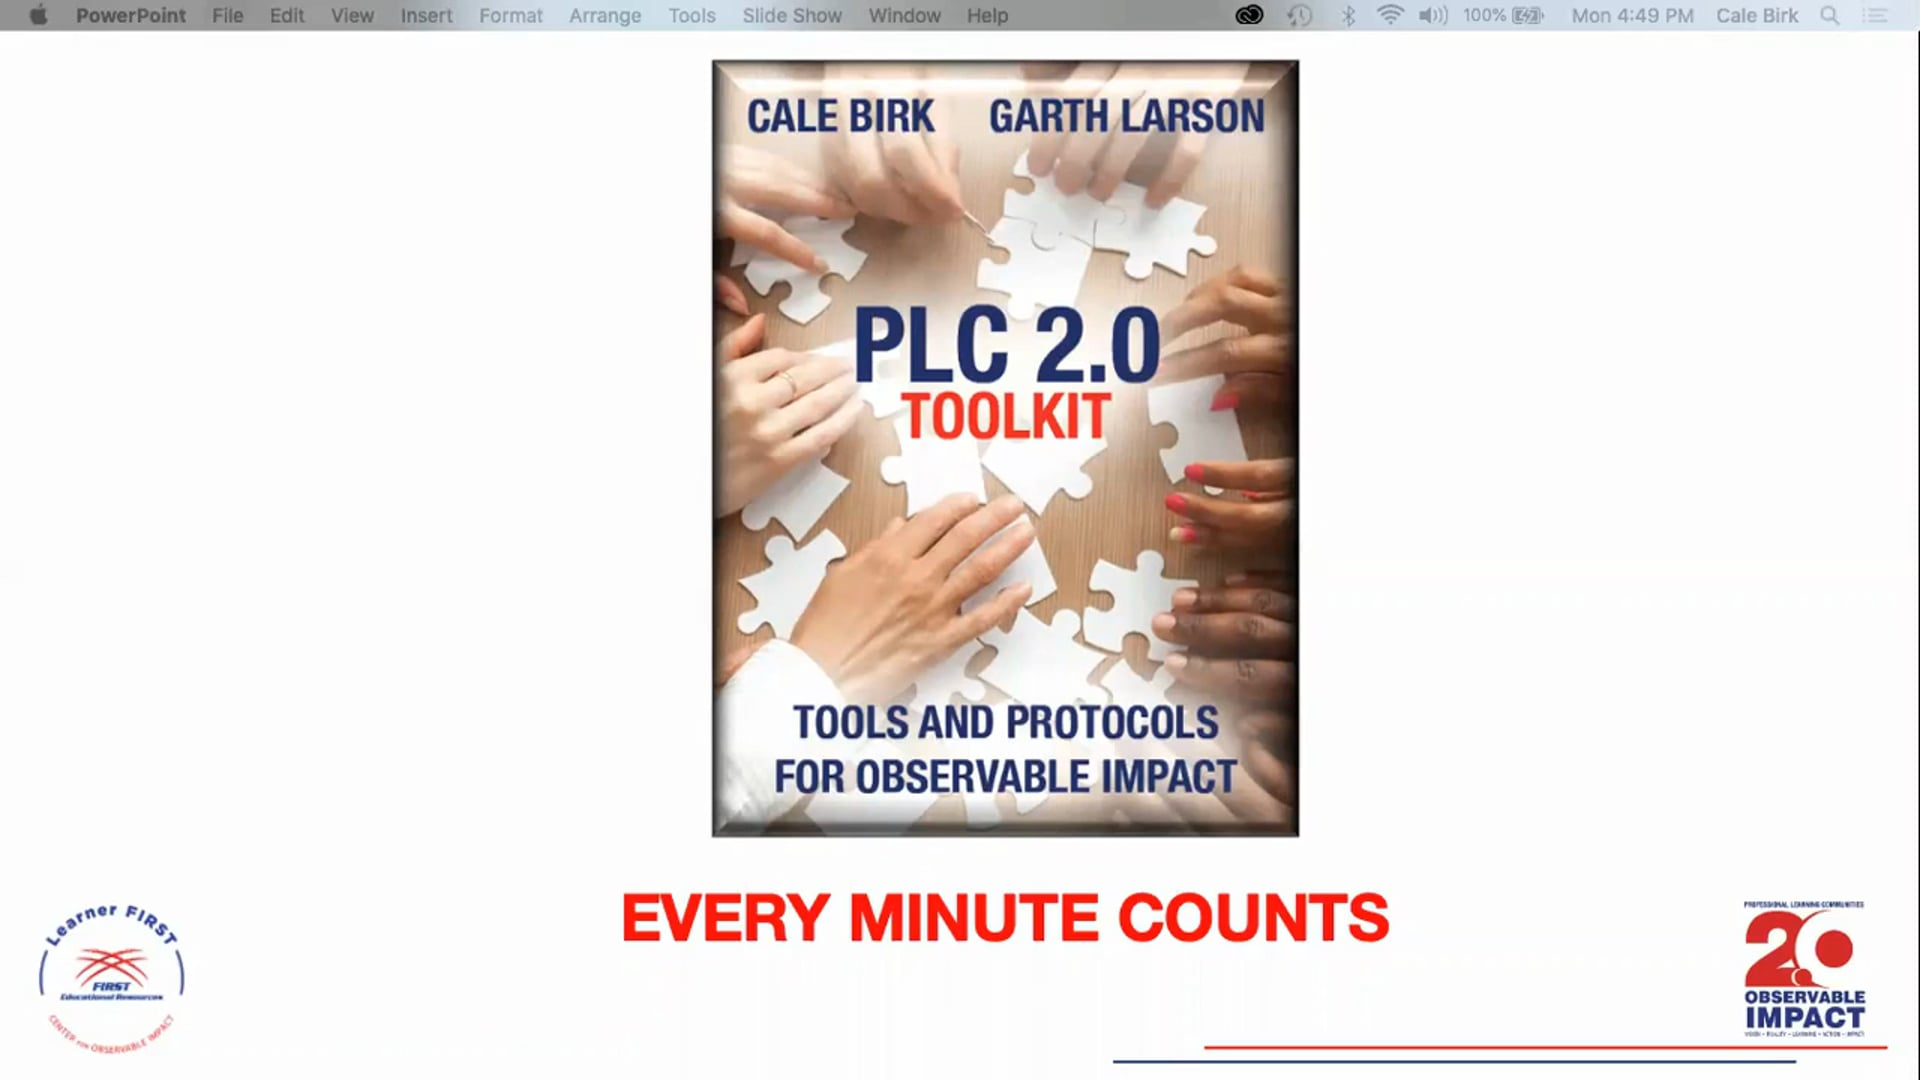 PLC 2.0 - Every Minute Counts